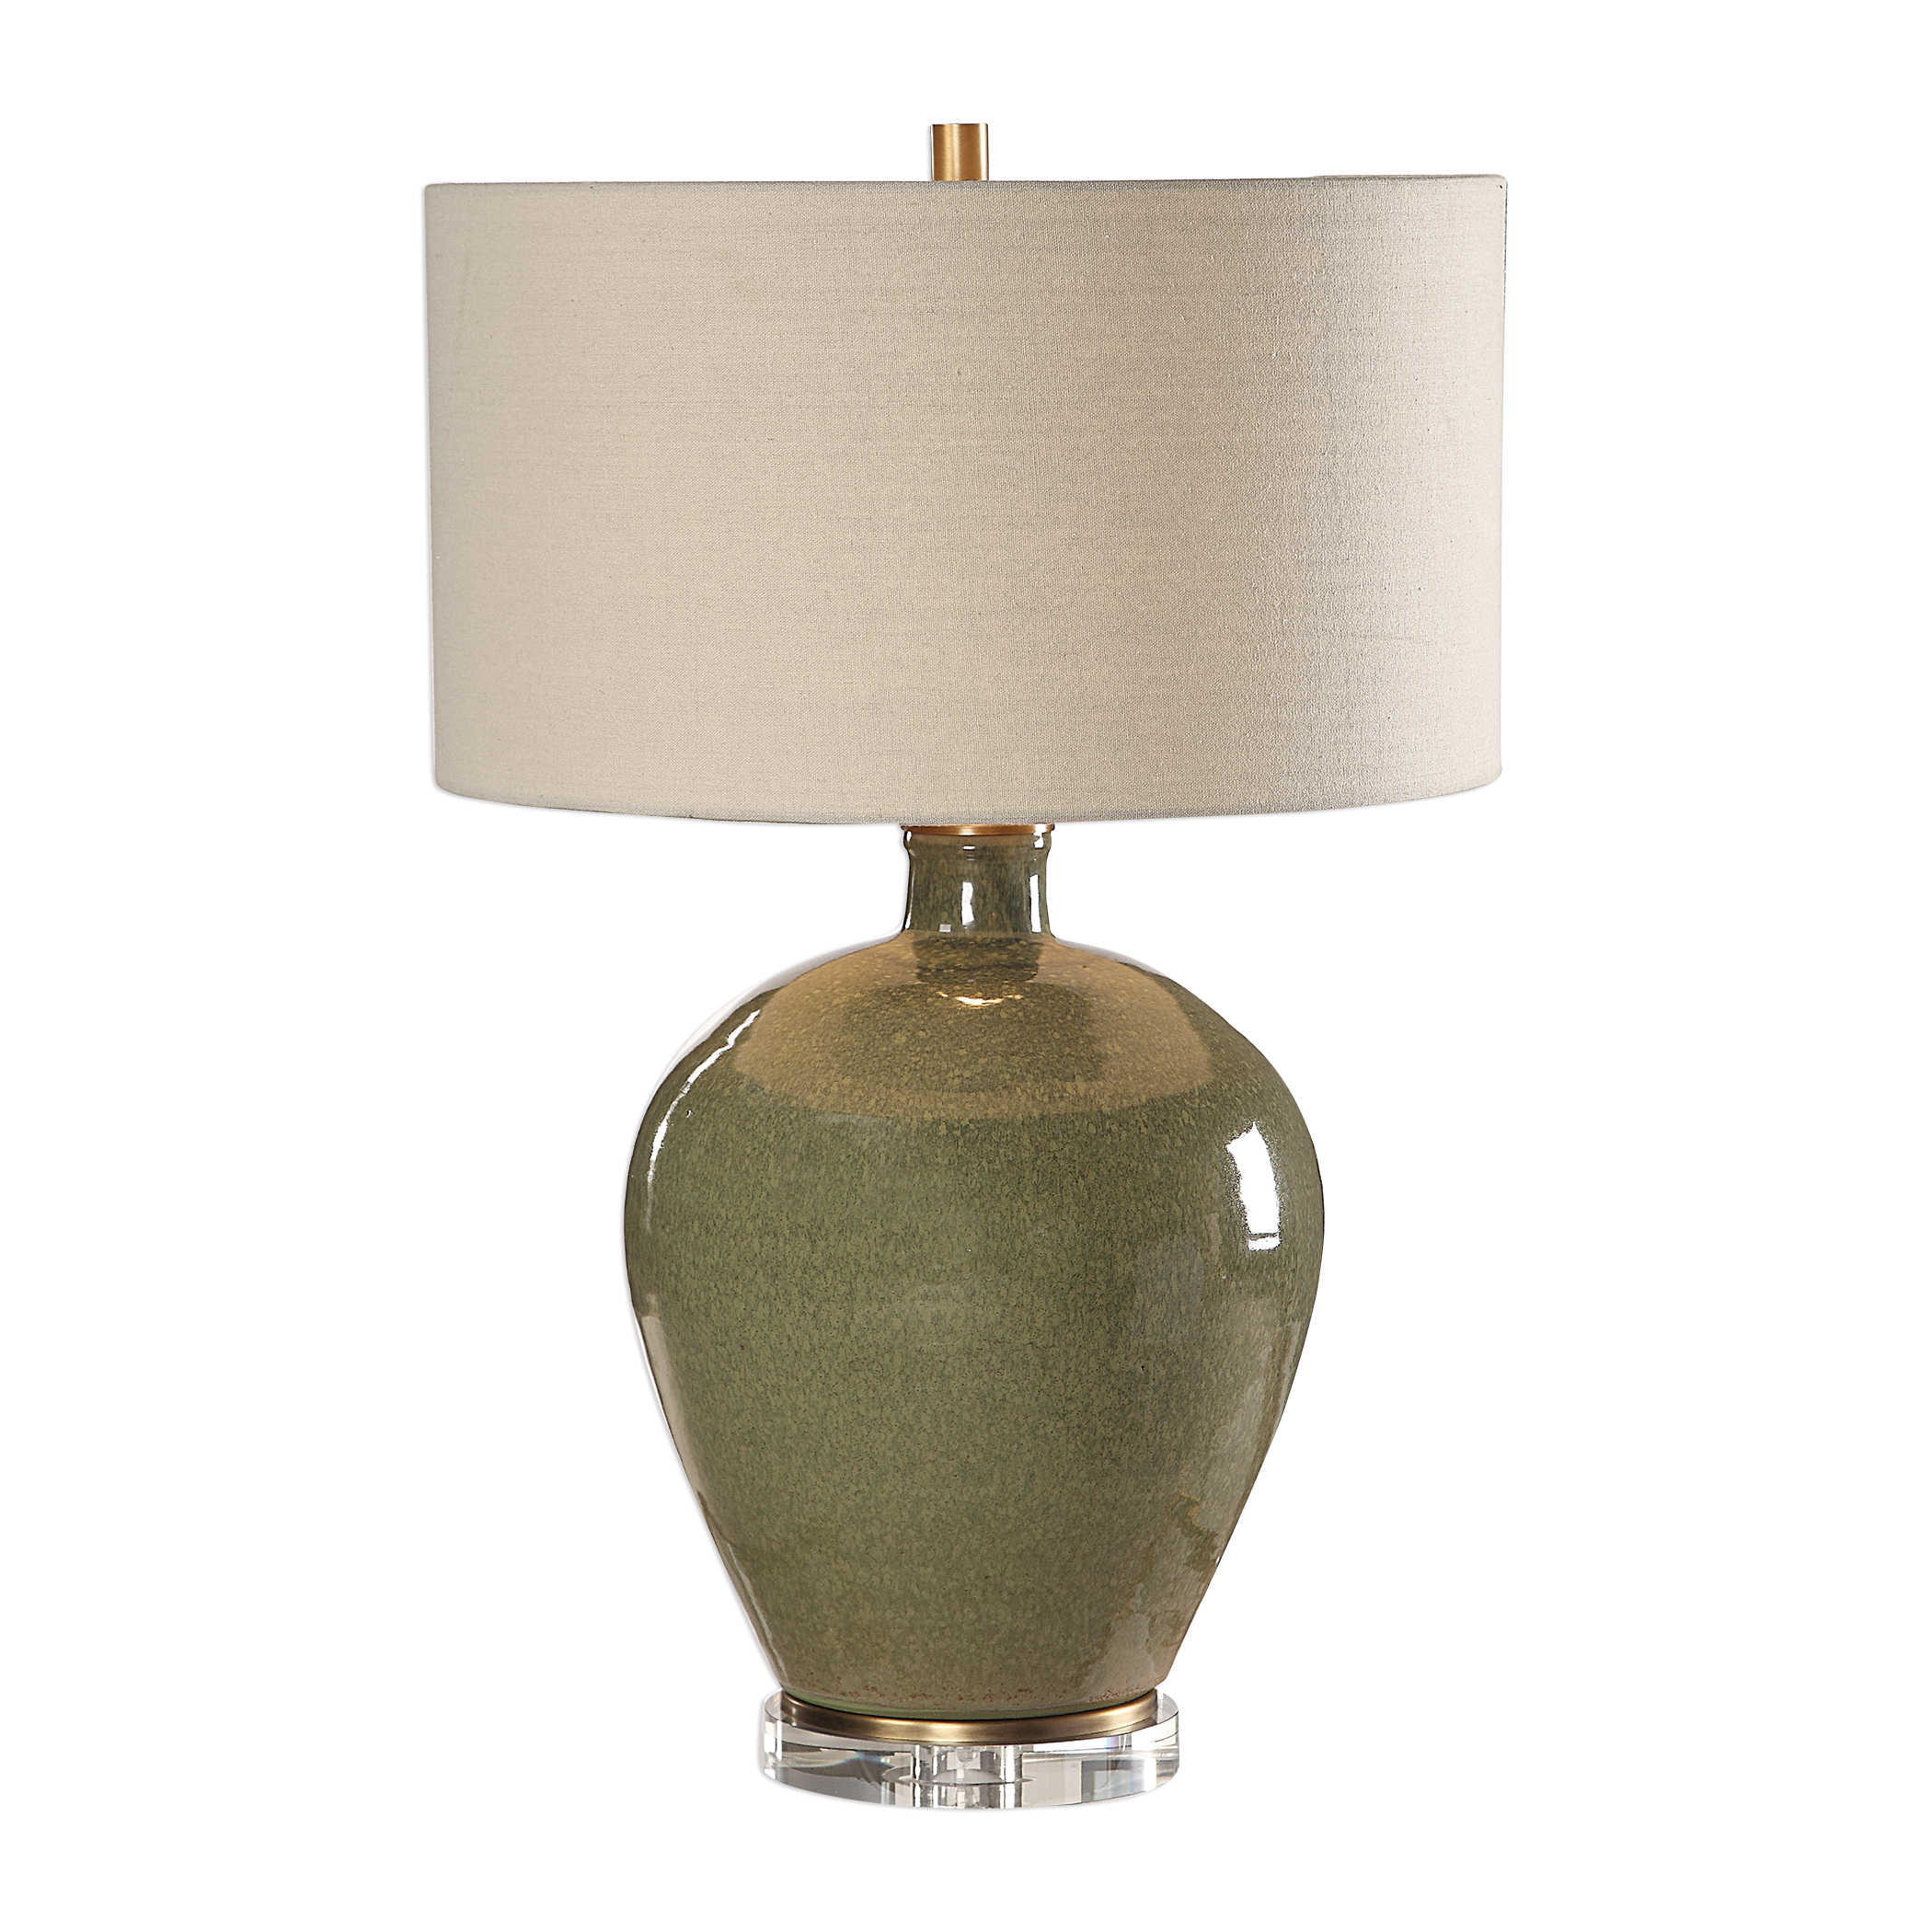 Emerald Ceramic Lamp-$445.00